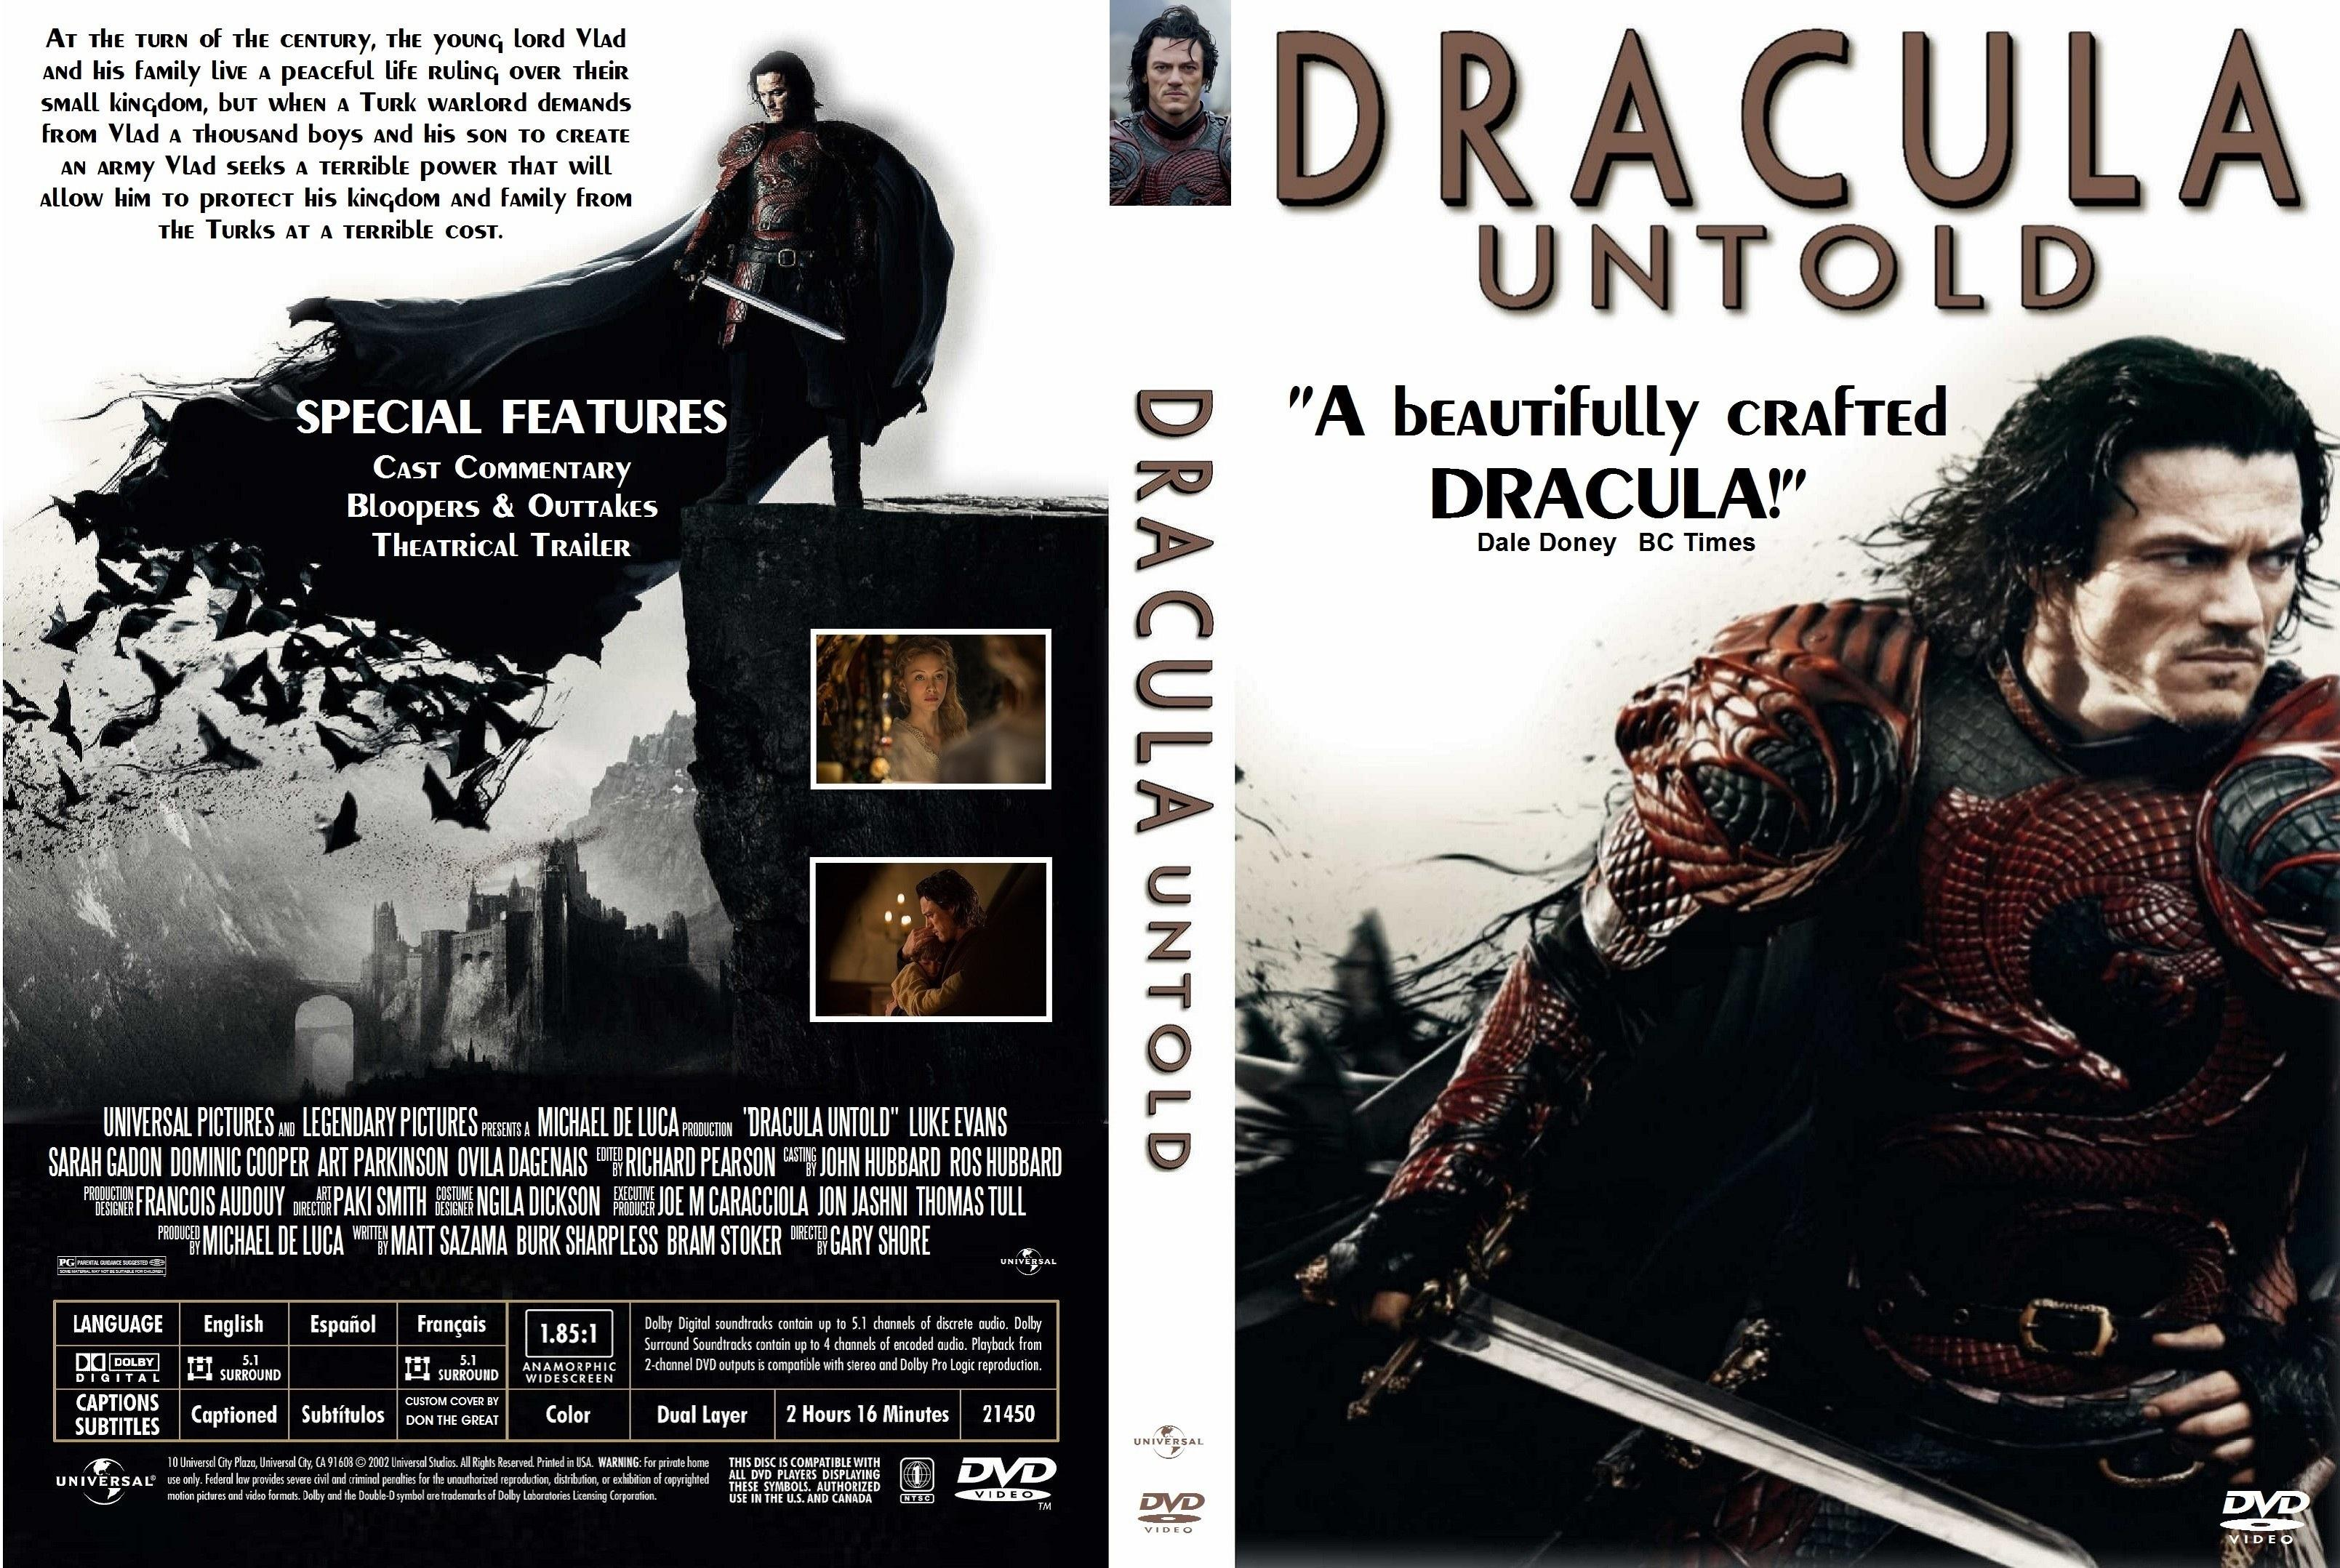 Covers Box Sk Dracula Untold 2014 High Quality Dvd Blueray Movie